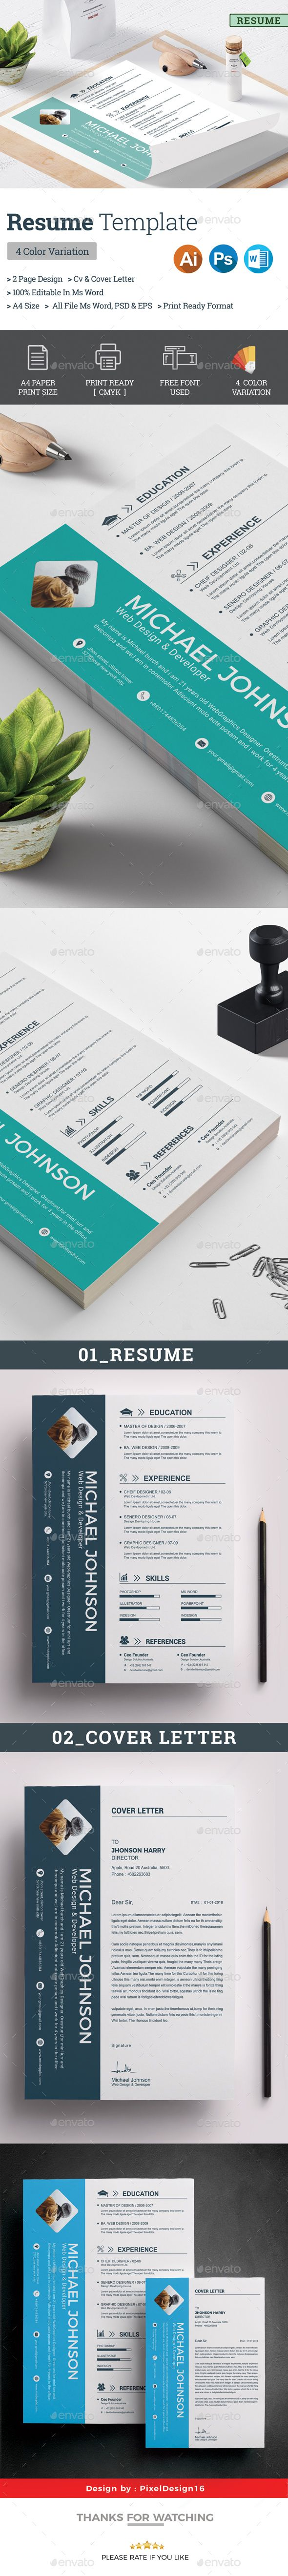 36 Best Cv Images On Pinterest